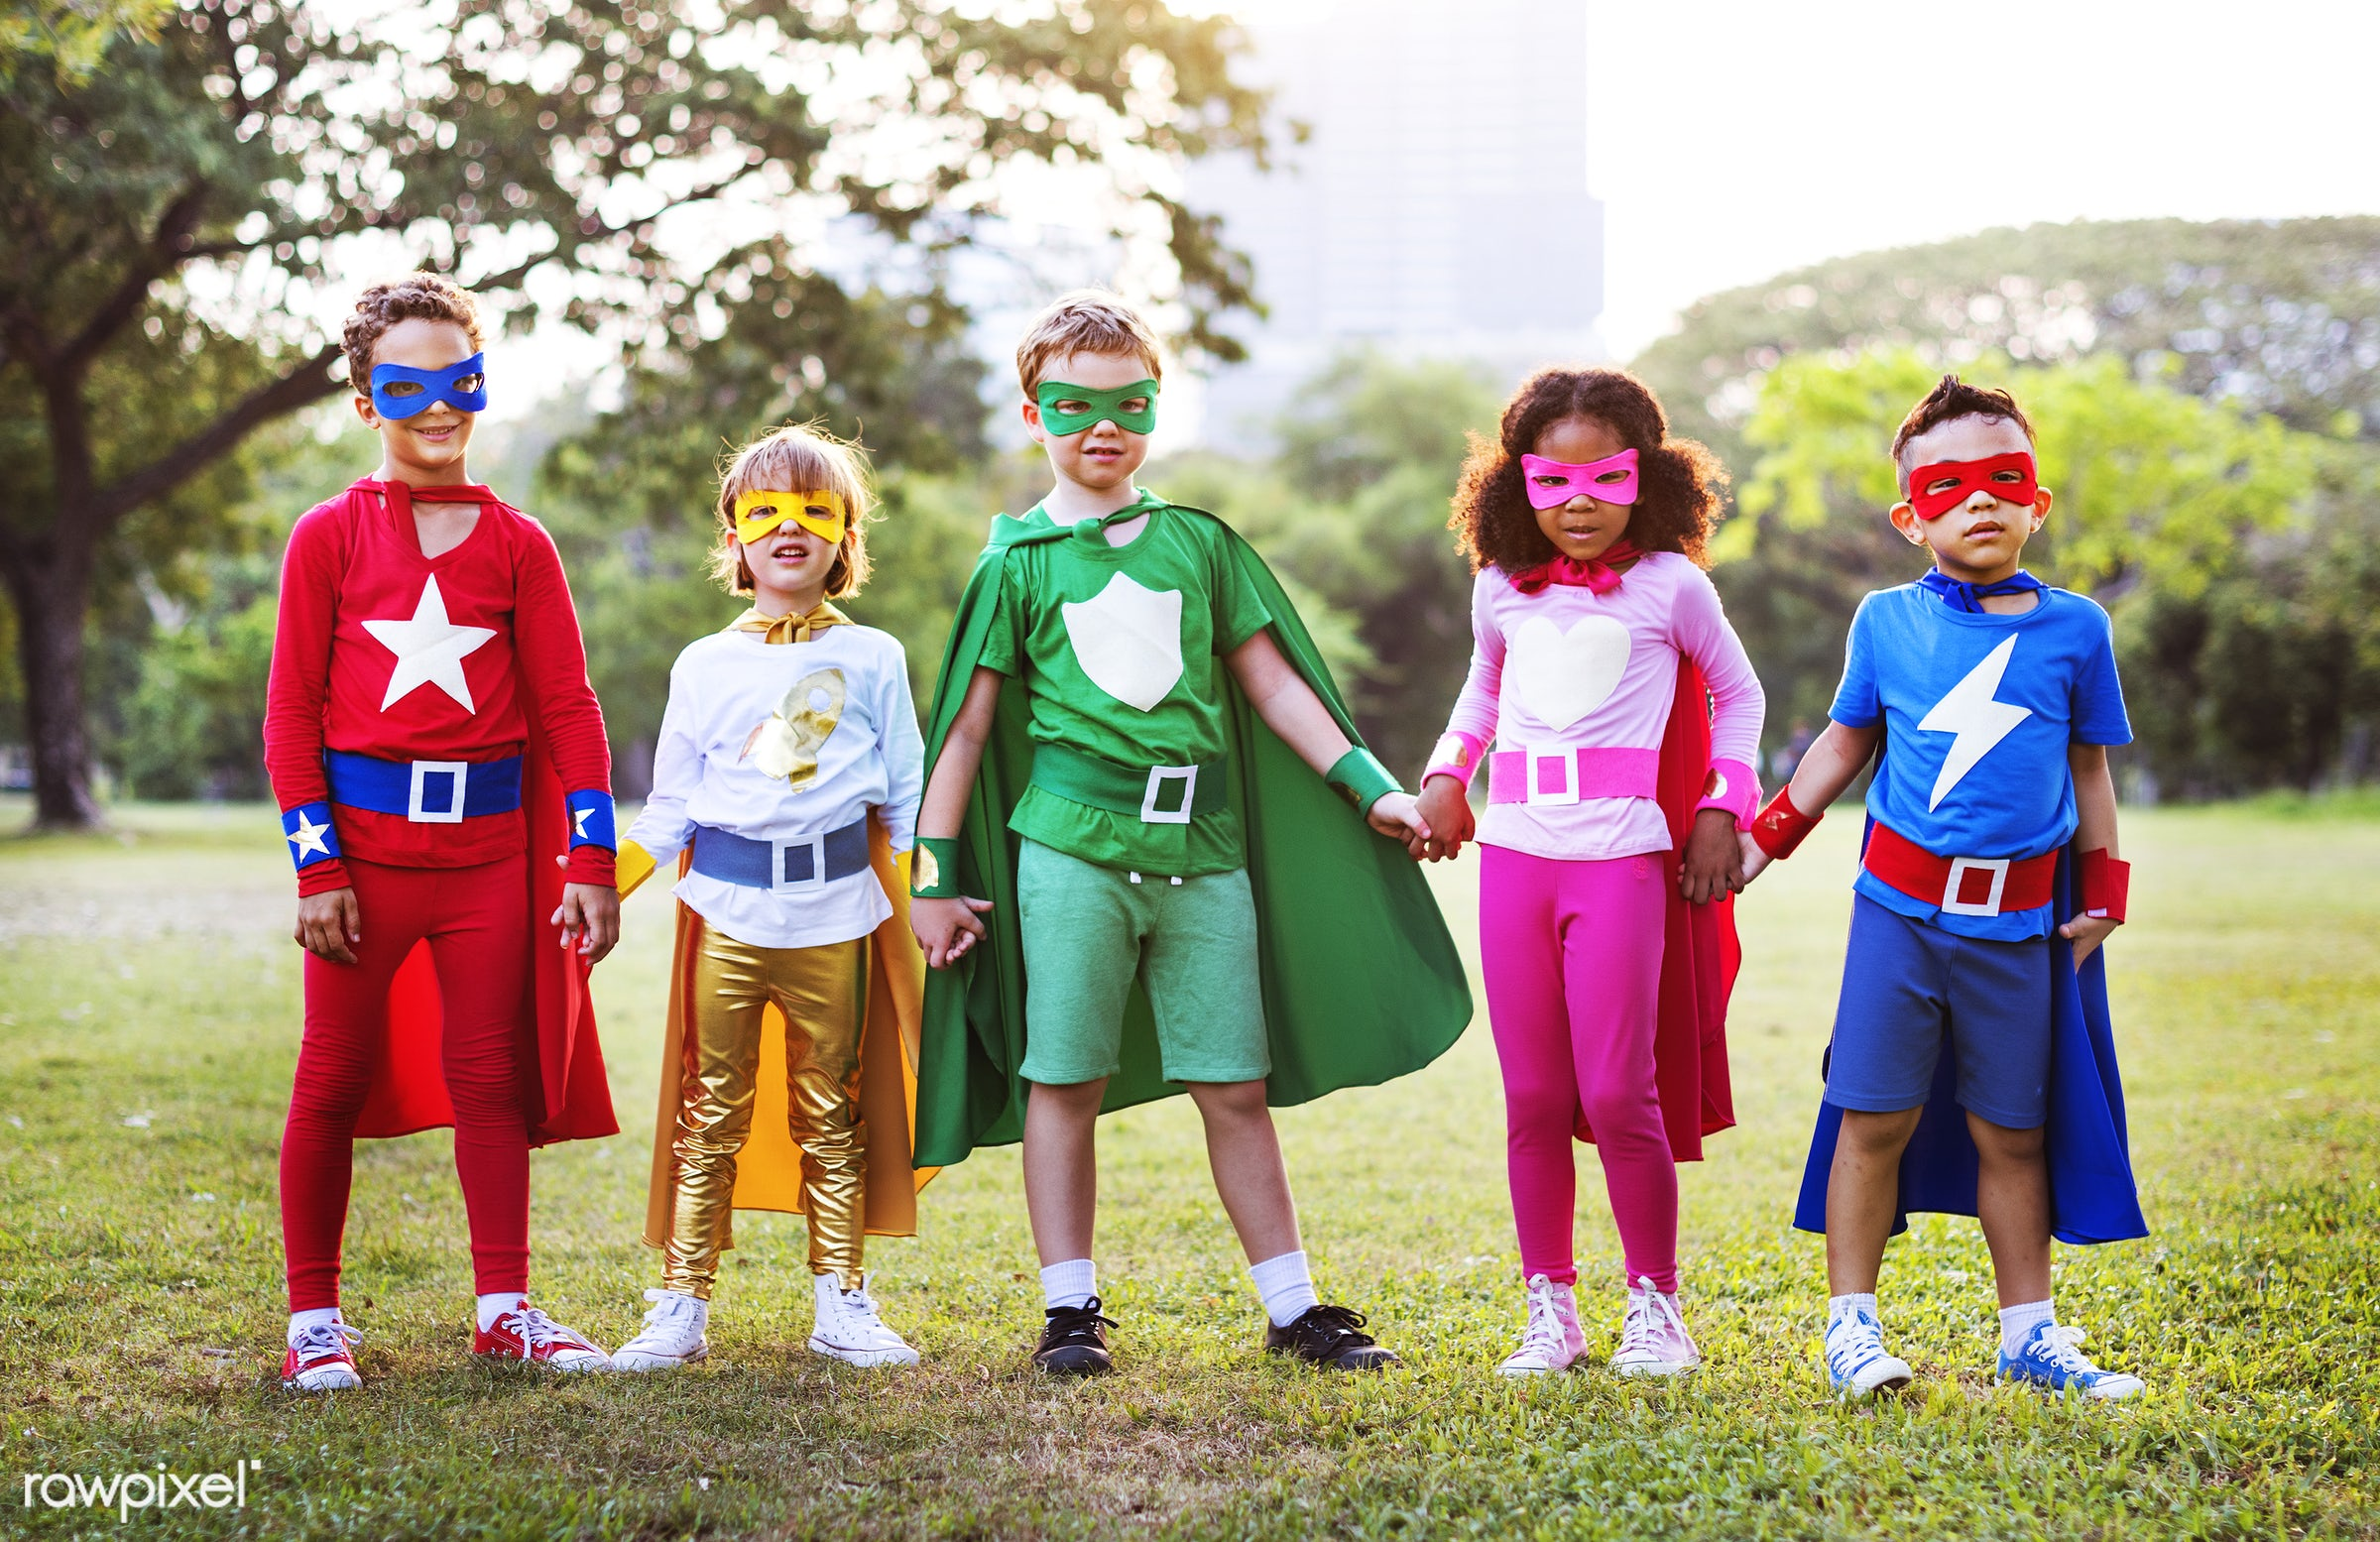 Superhero kids with superpowers - hero, superhero, dream, kids, african descent, asian ethnicity, aspirations, boys, brave,...